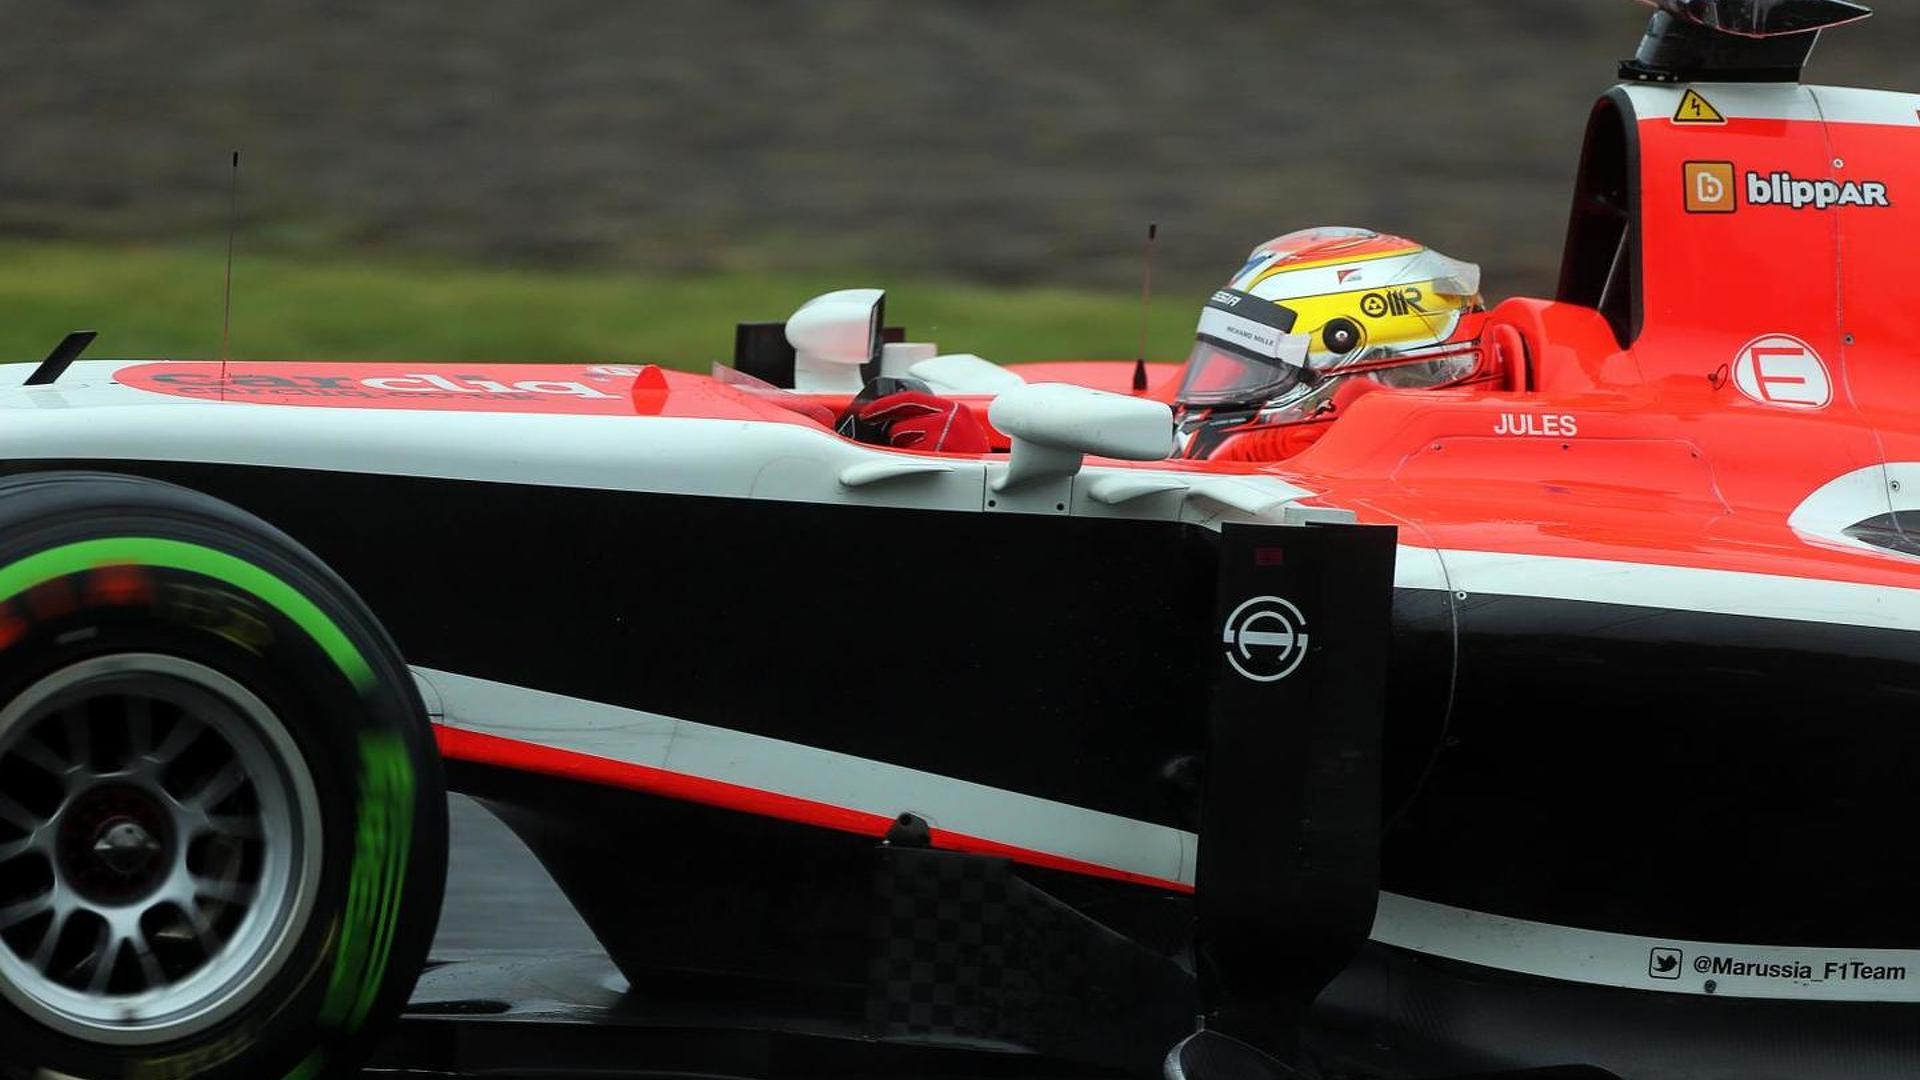 People 'shirking responsibility' after Bianchi crash - mother